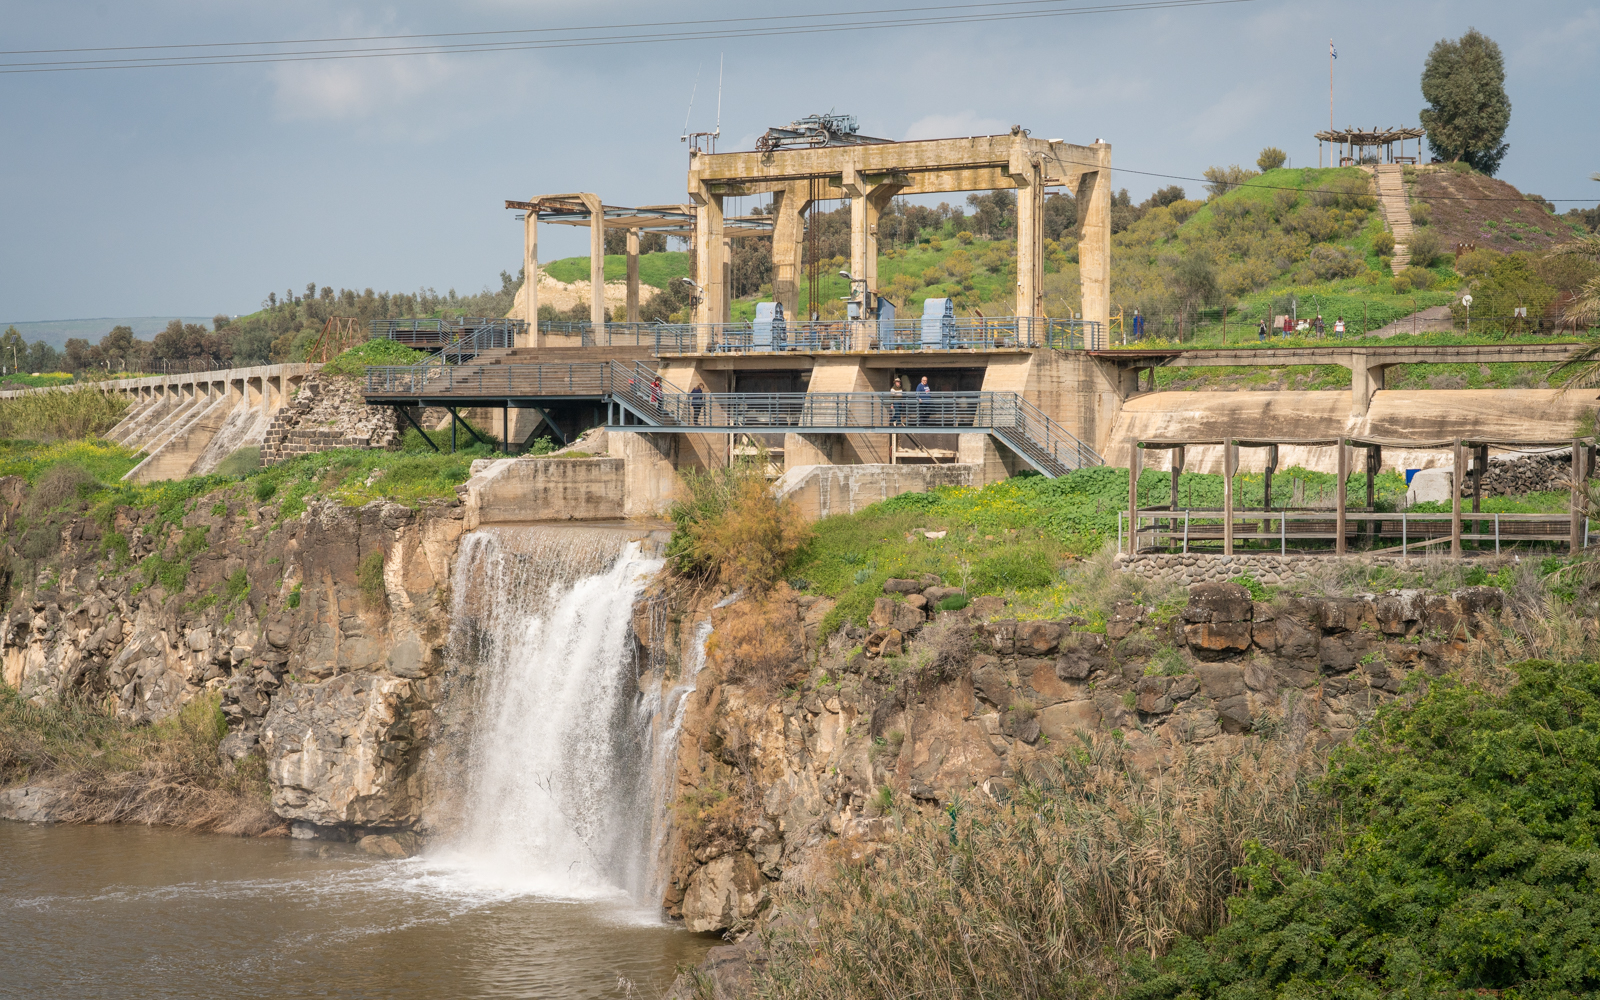 A 1930s hydroelectric power station at Naharayim on the Jordan River, January 29, 2019. (Luke Tress/Times of Israel)